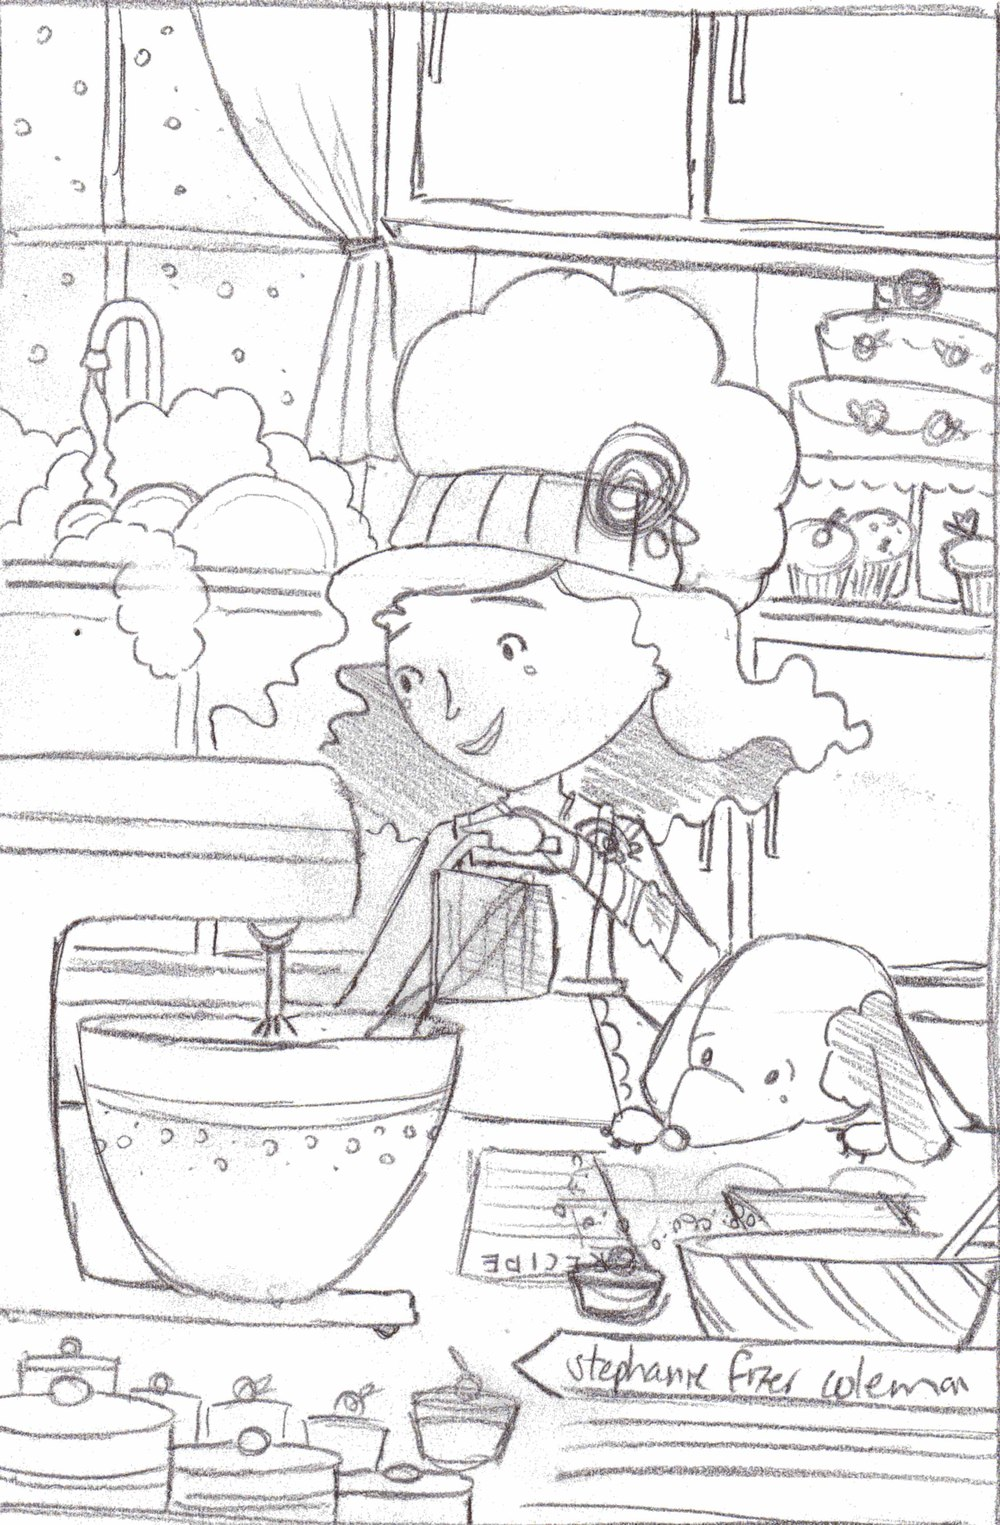 lily and lou valentine promo sketch.jpg